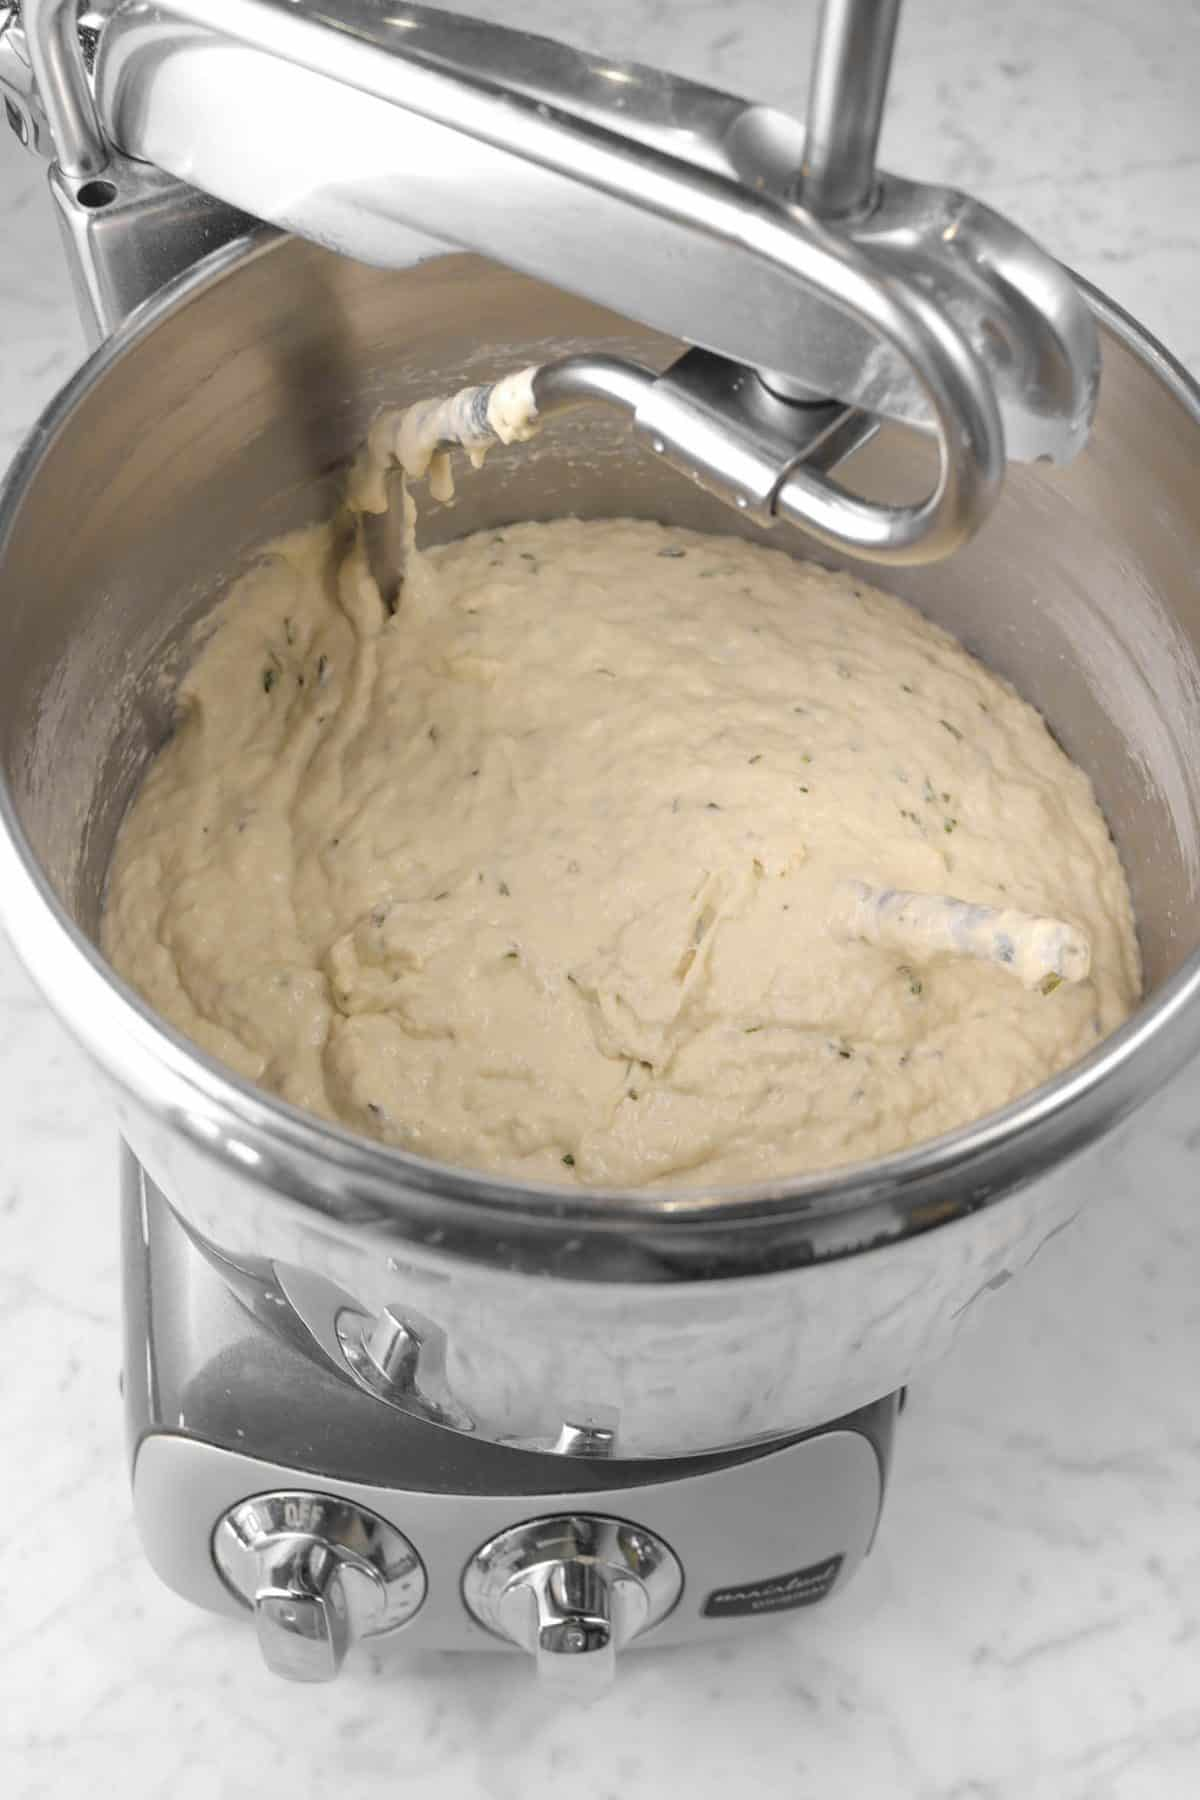 focaccia dough in a mixer after salt has been stirred in